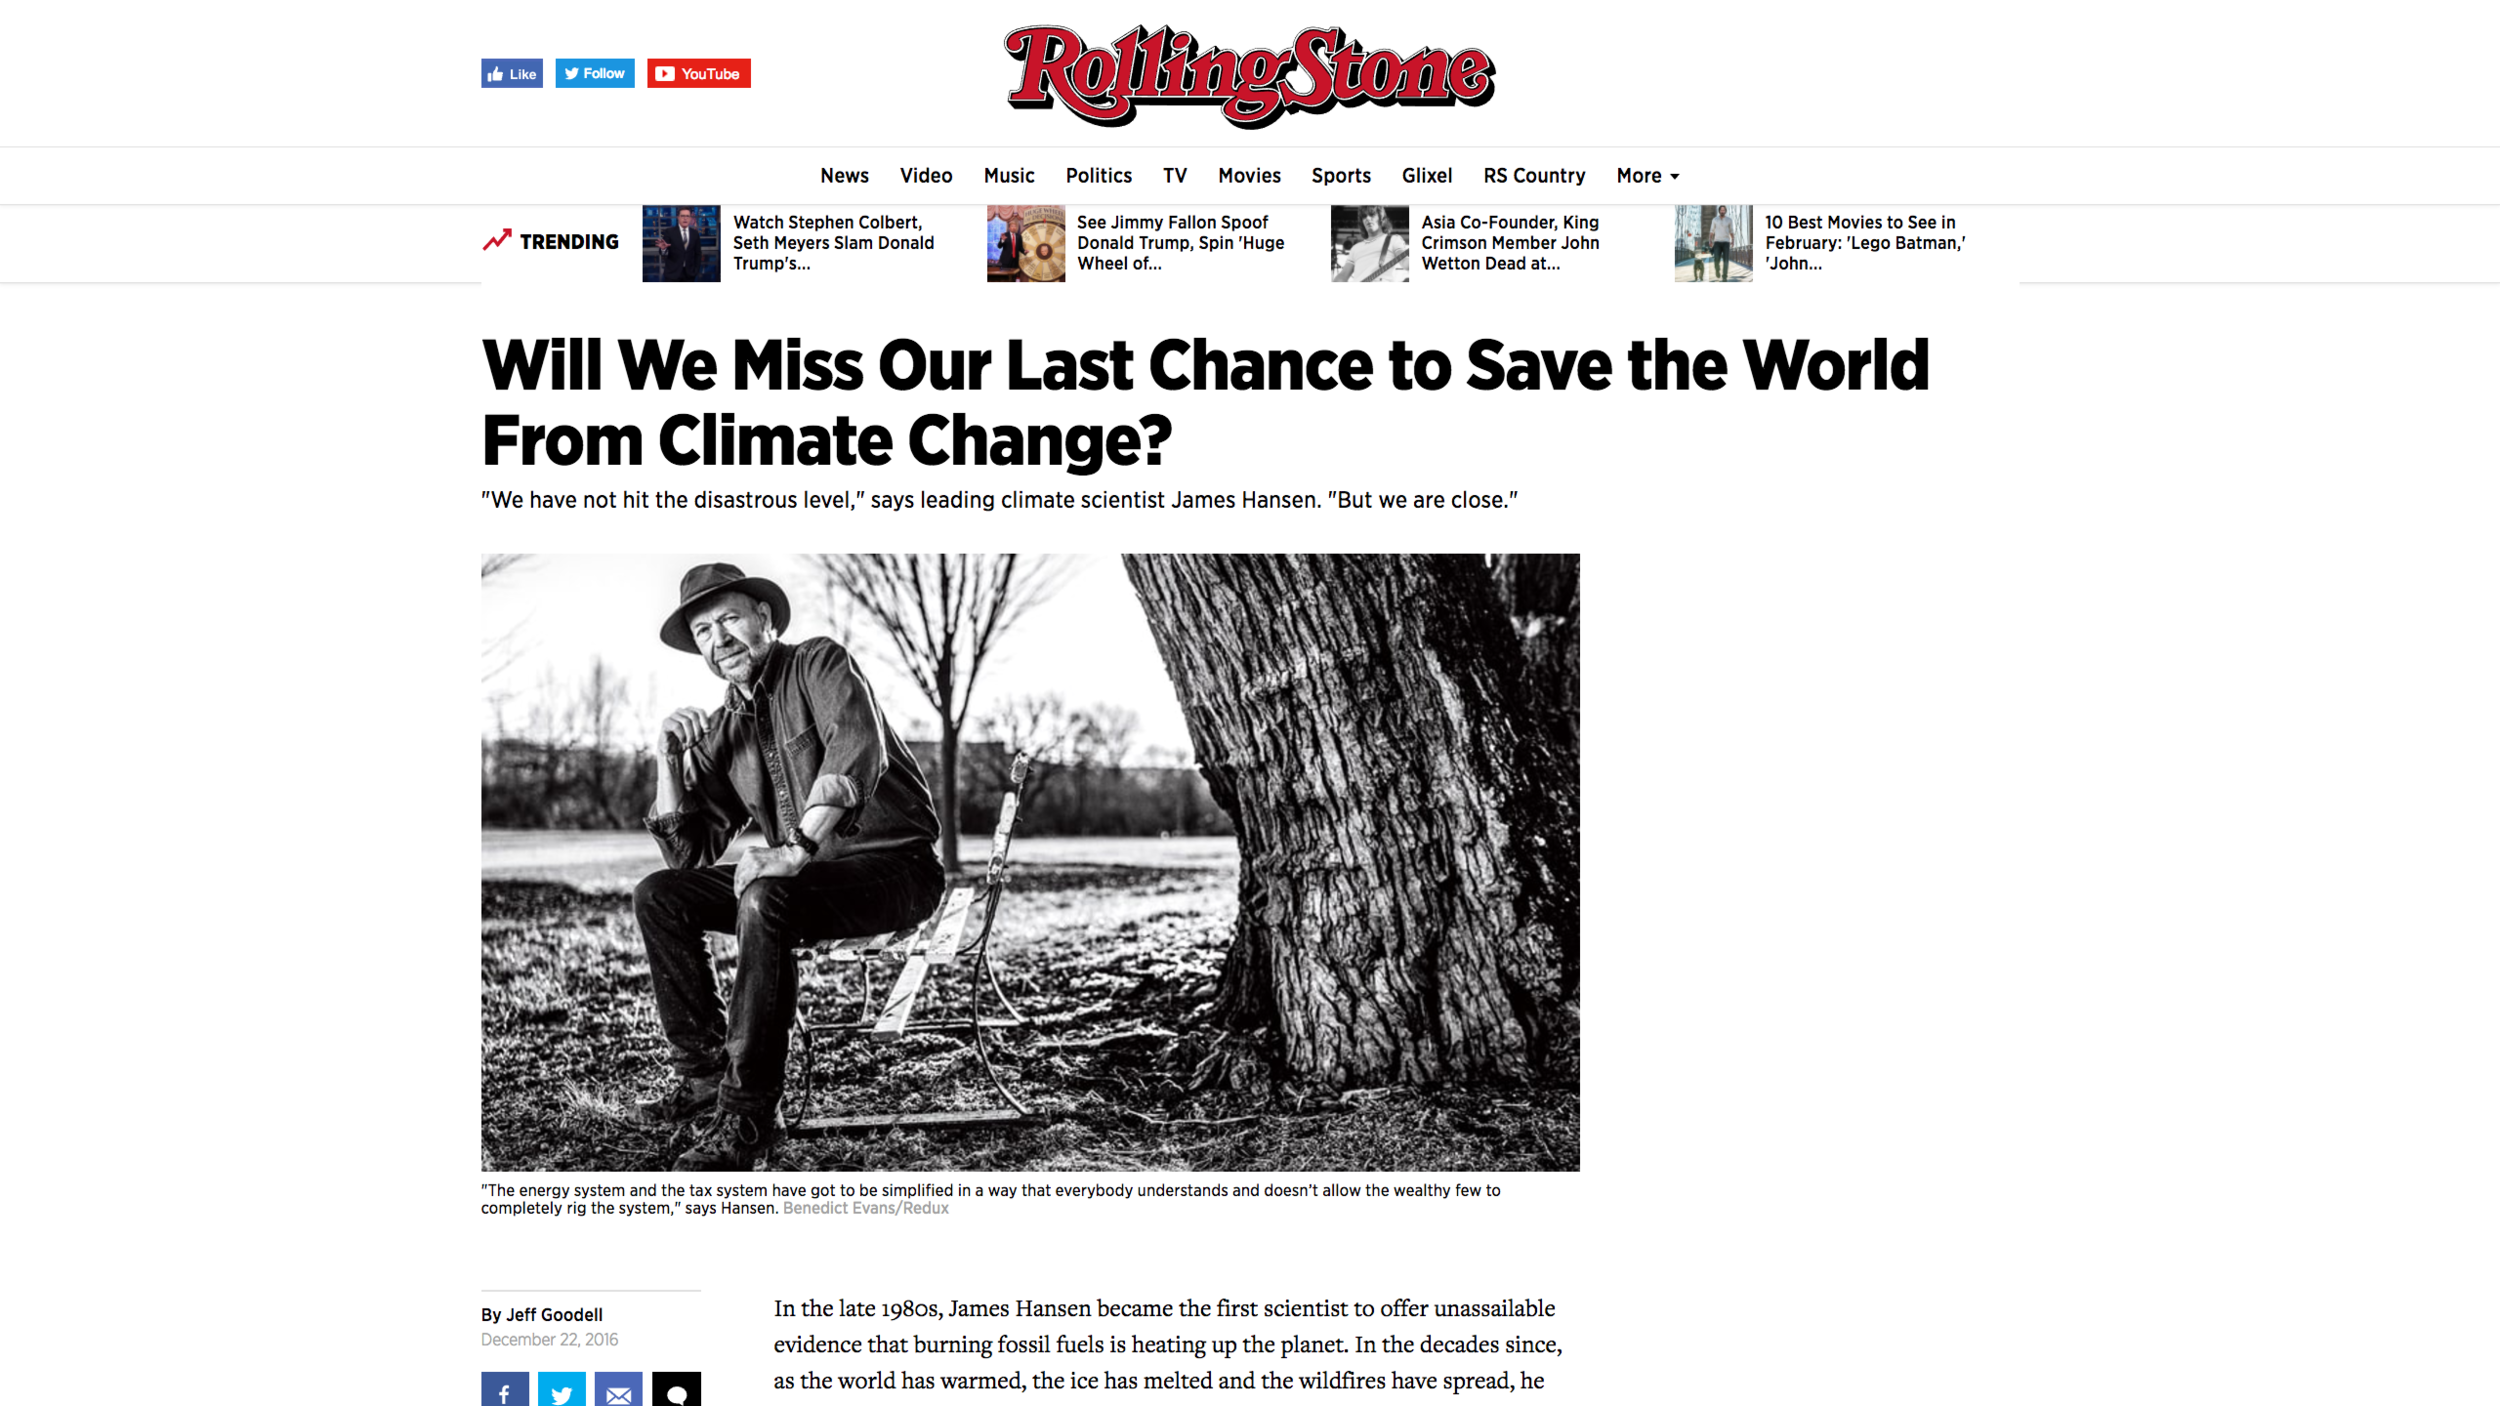 """Link to Jeff Goodell's December 22, 2016 Rolling Stone interview with James Hansen:"""" Will We Miss Our Last Chance to Save the World From Climate Change?"""""""